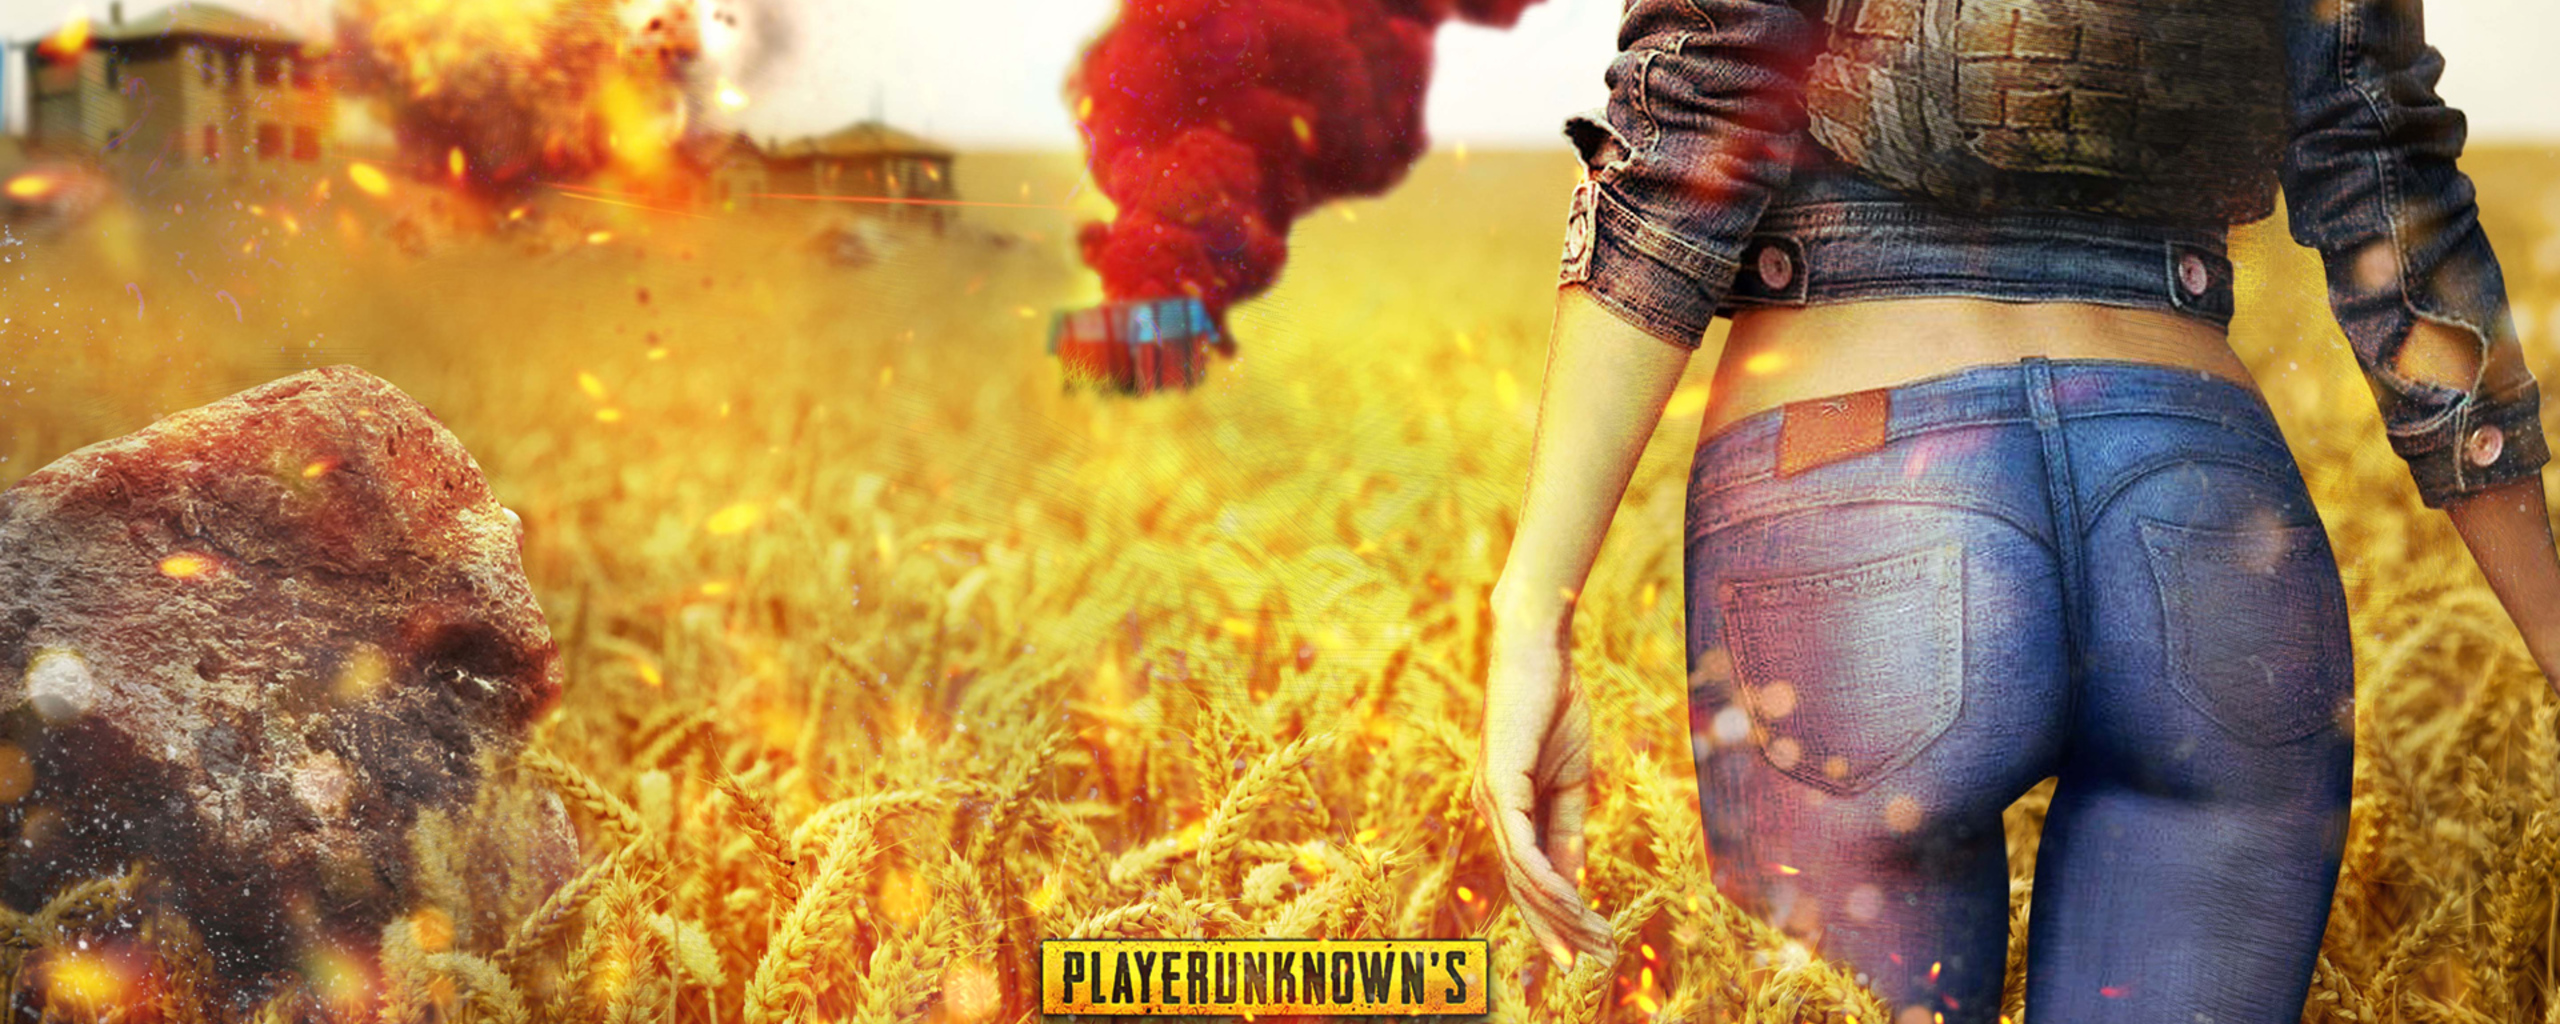 playerunknowns-battlegrounds-1080p-75.jpg